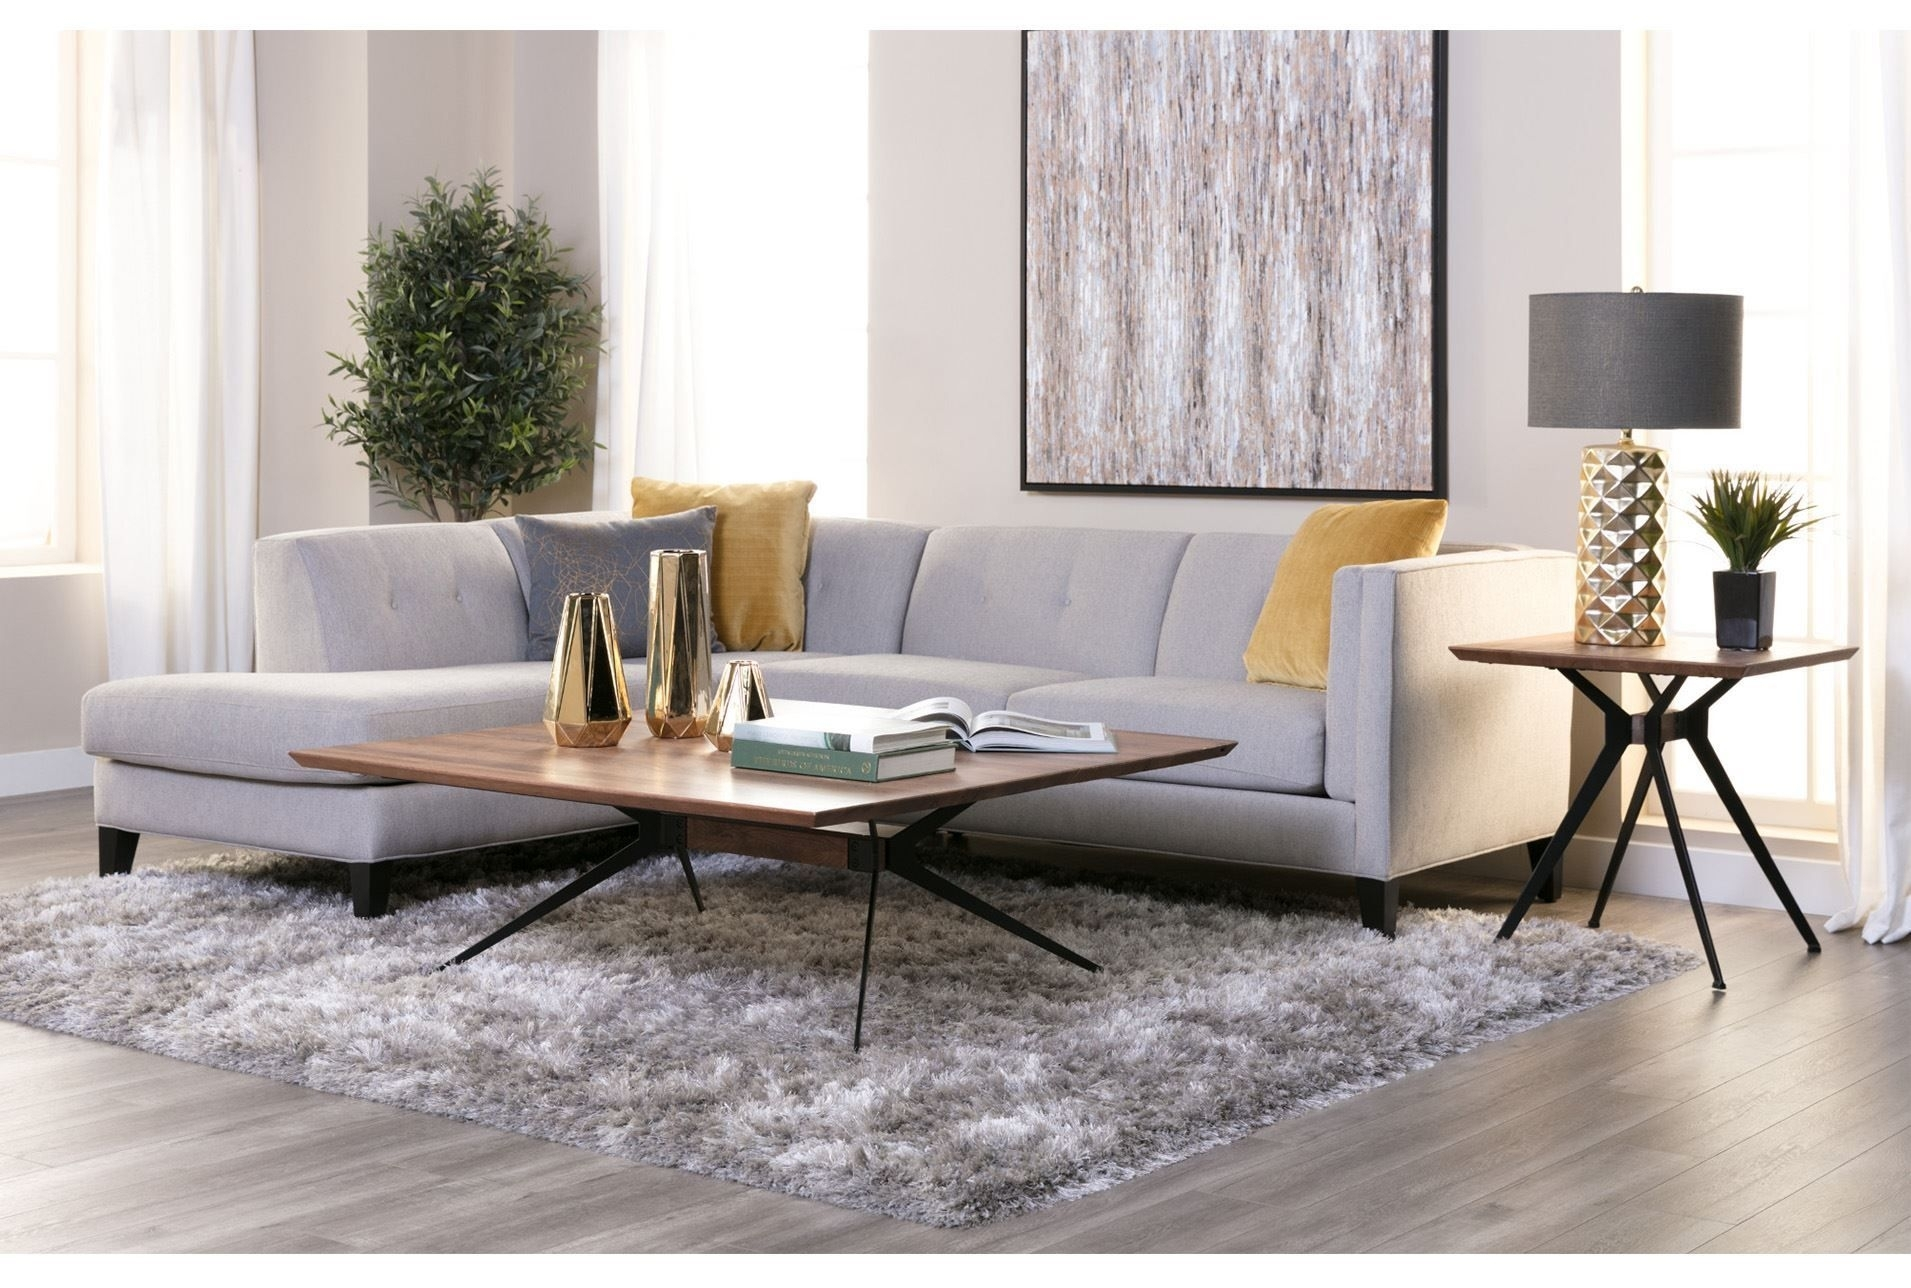 Avery 2 Piece Sectional W/laf Armless Chaise | Home Decor/interior In Avery 2 Piece Sectionals With Raf Armless Chaise (View 2 of 25)